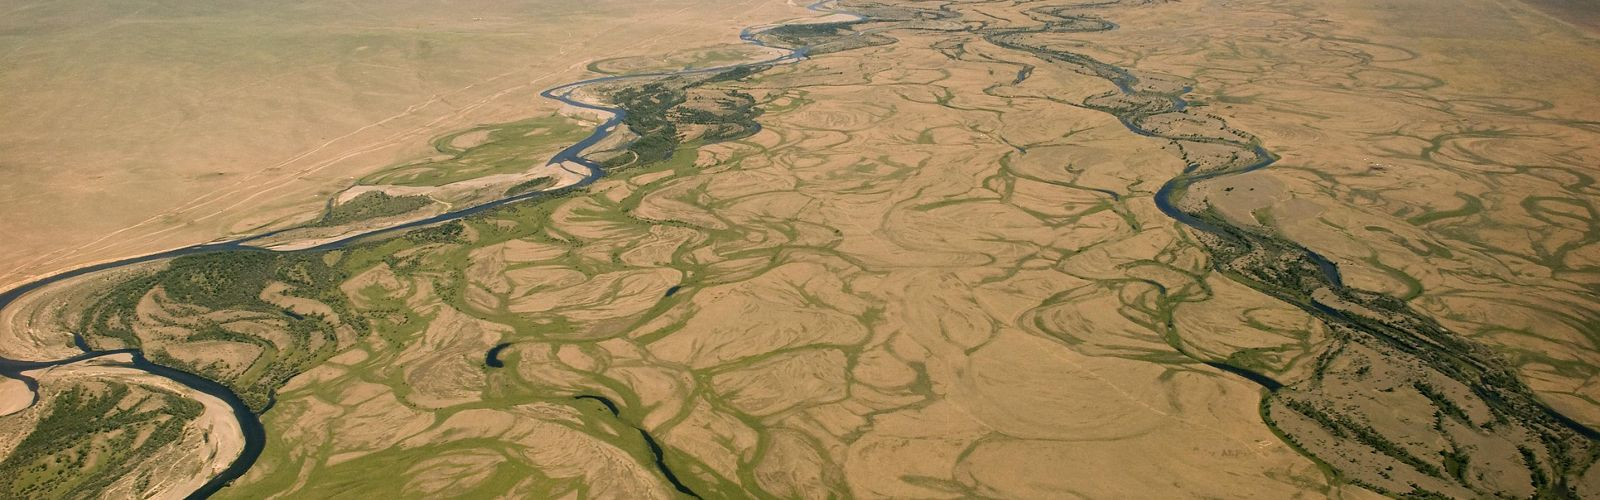 aerial view of brown and green grassland with meandering rivers